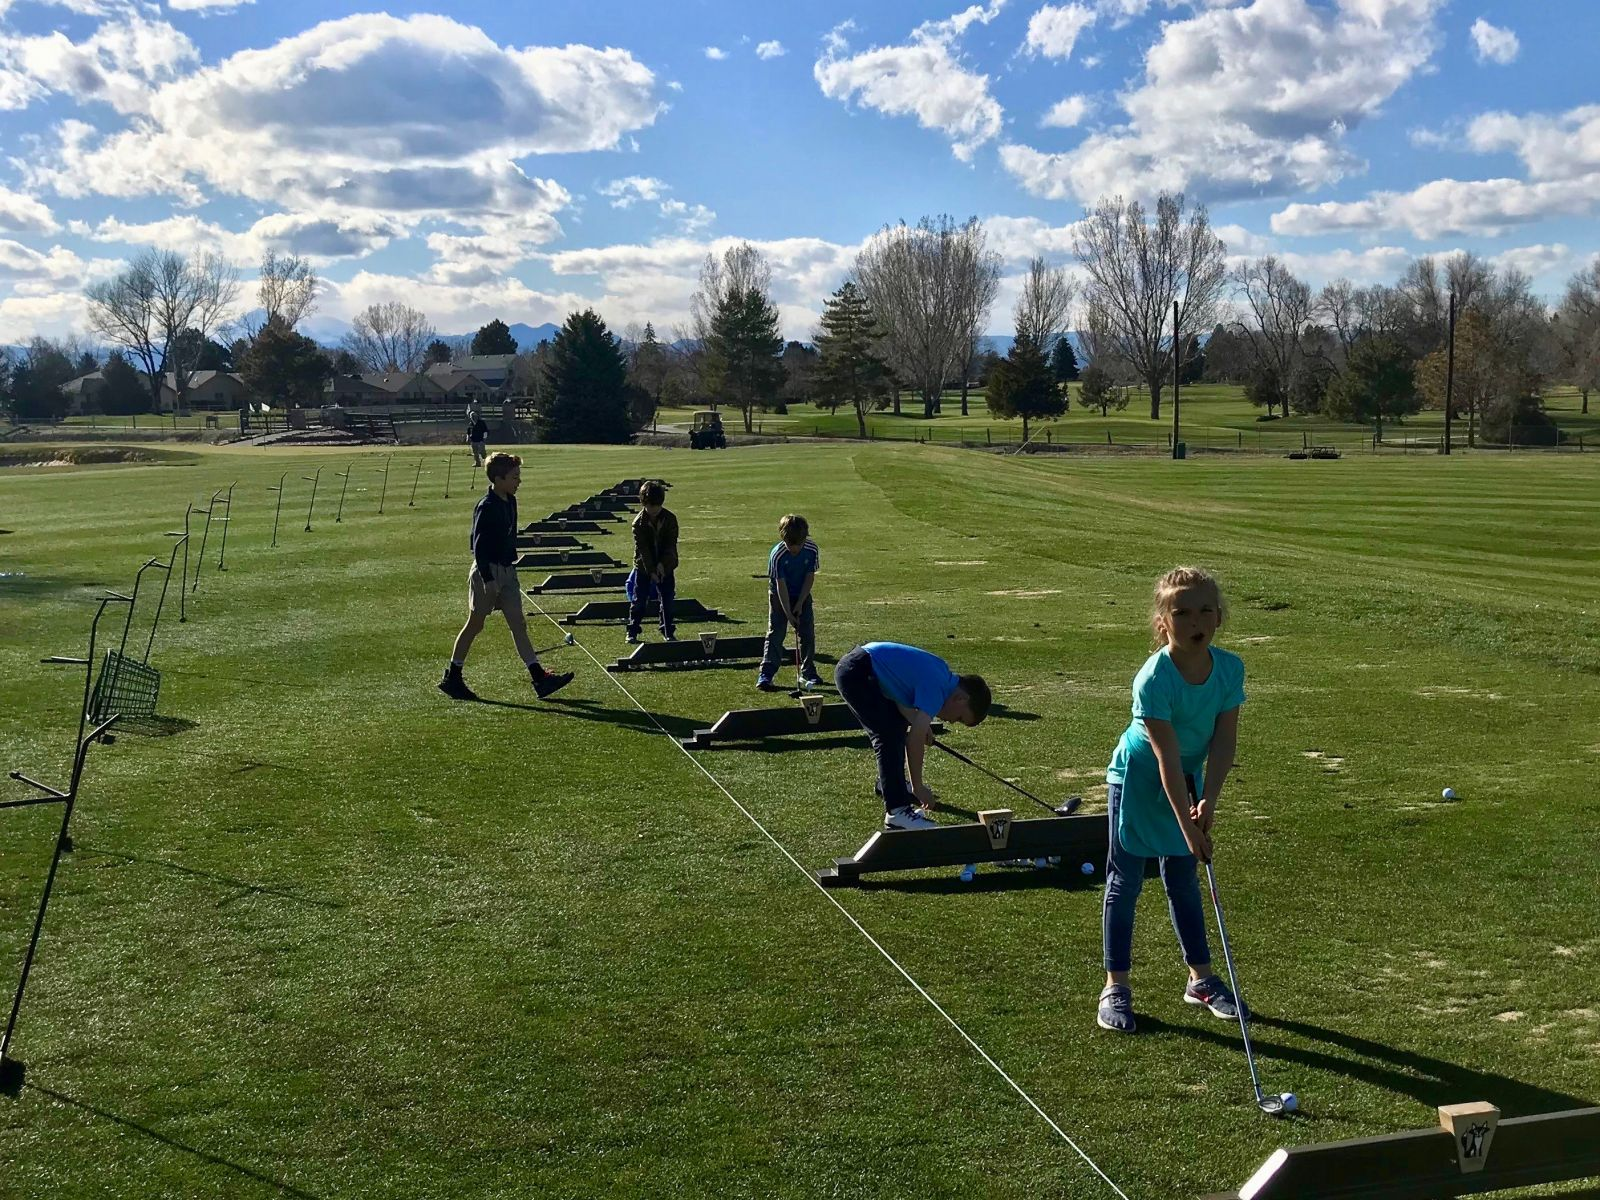 A group of junior golfers practice on the driving range at The Fox Hill Club